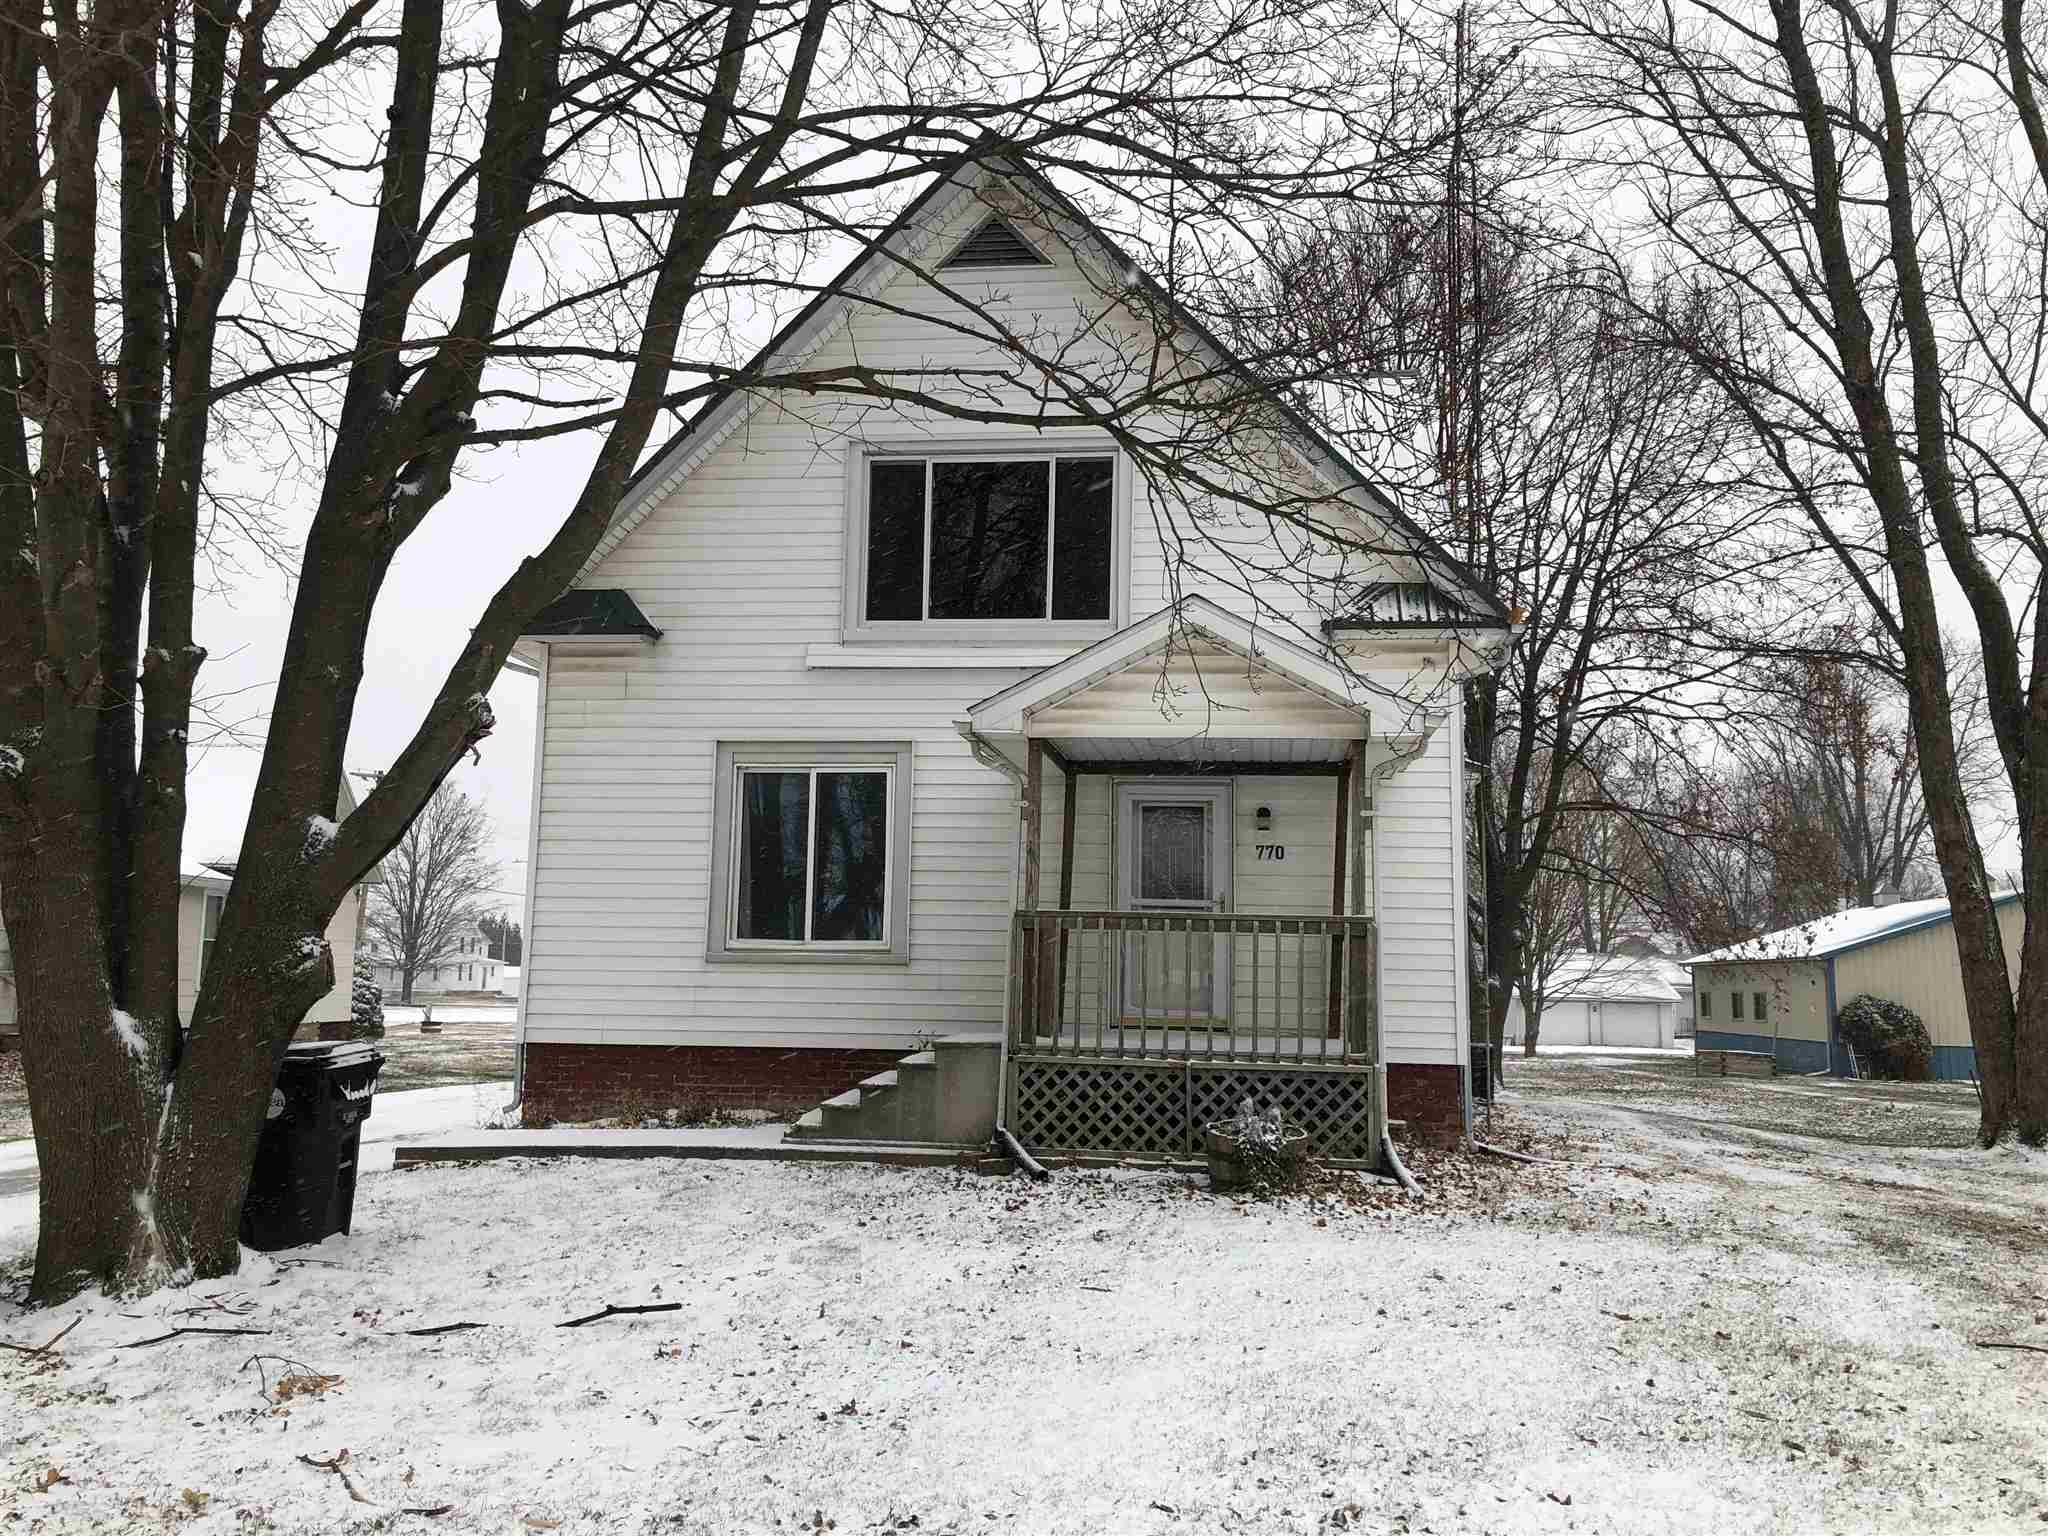 770 MAIN Property Photo - Fairview, IL real estate listing